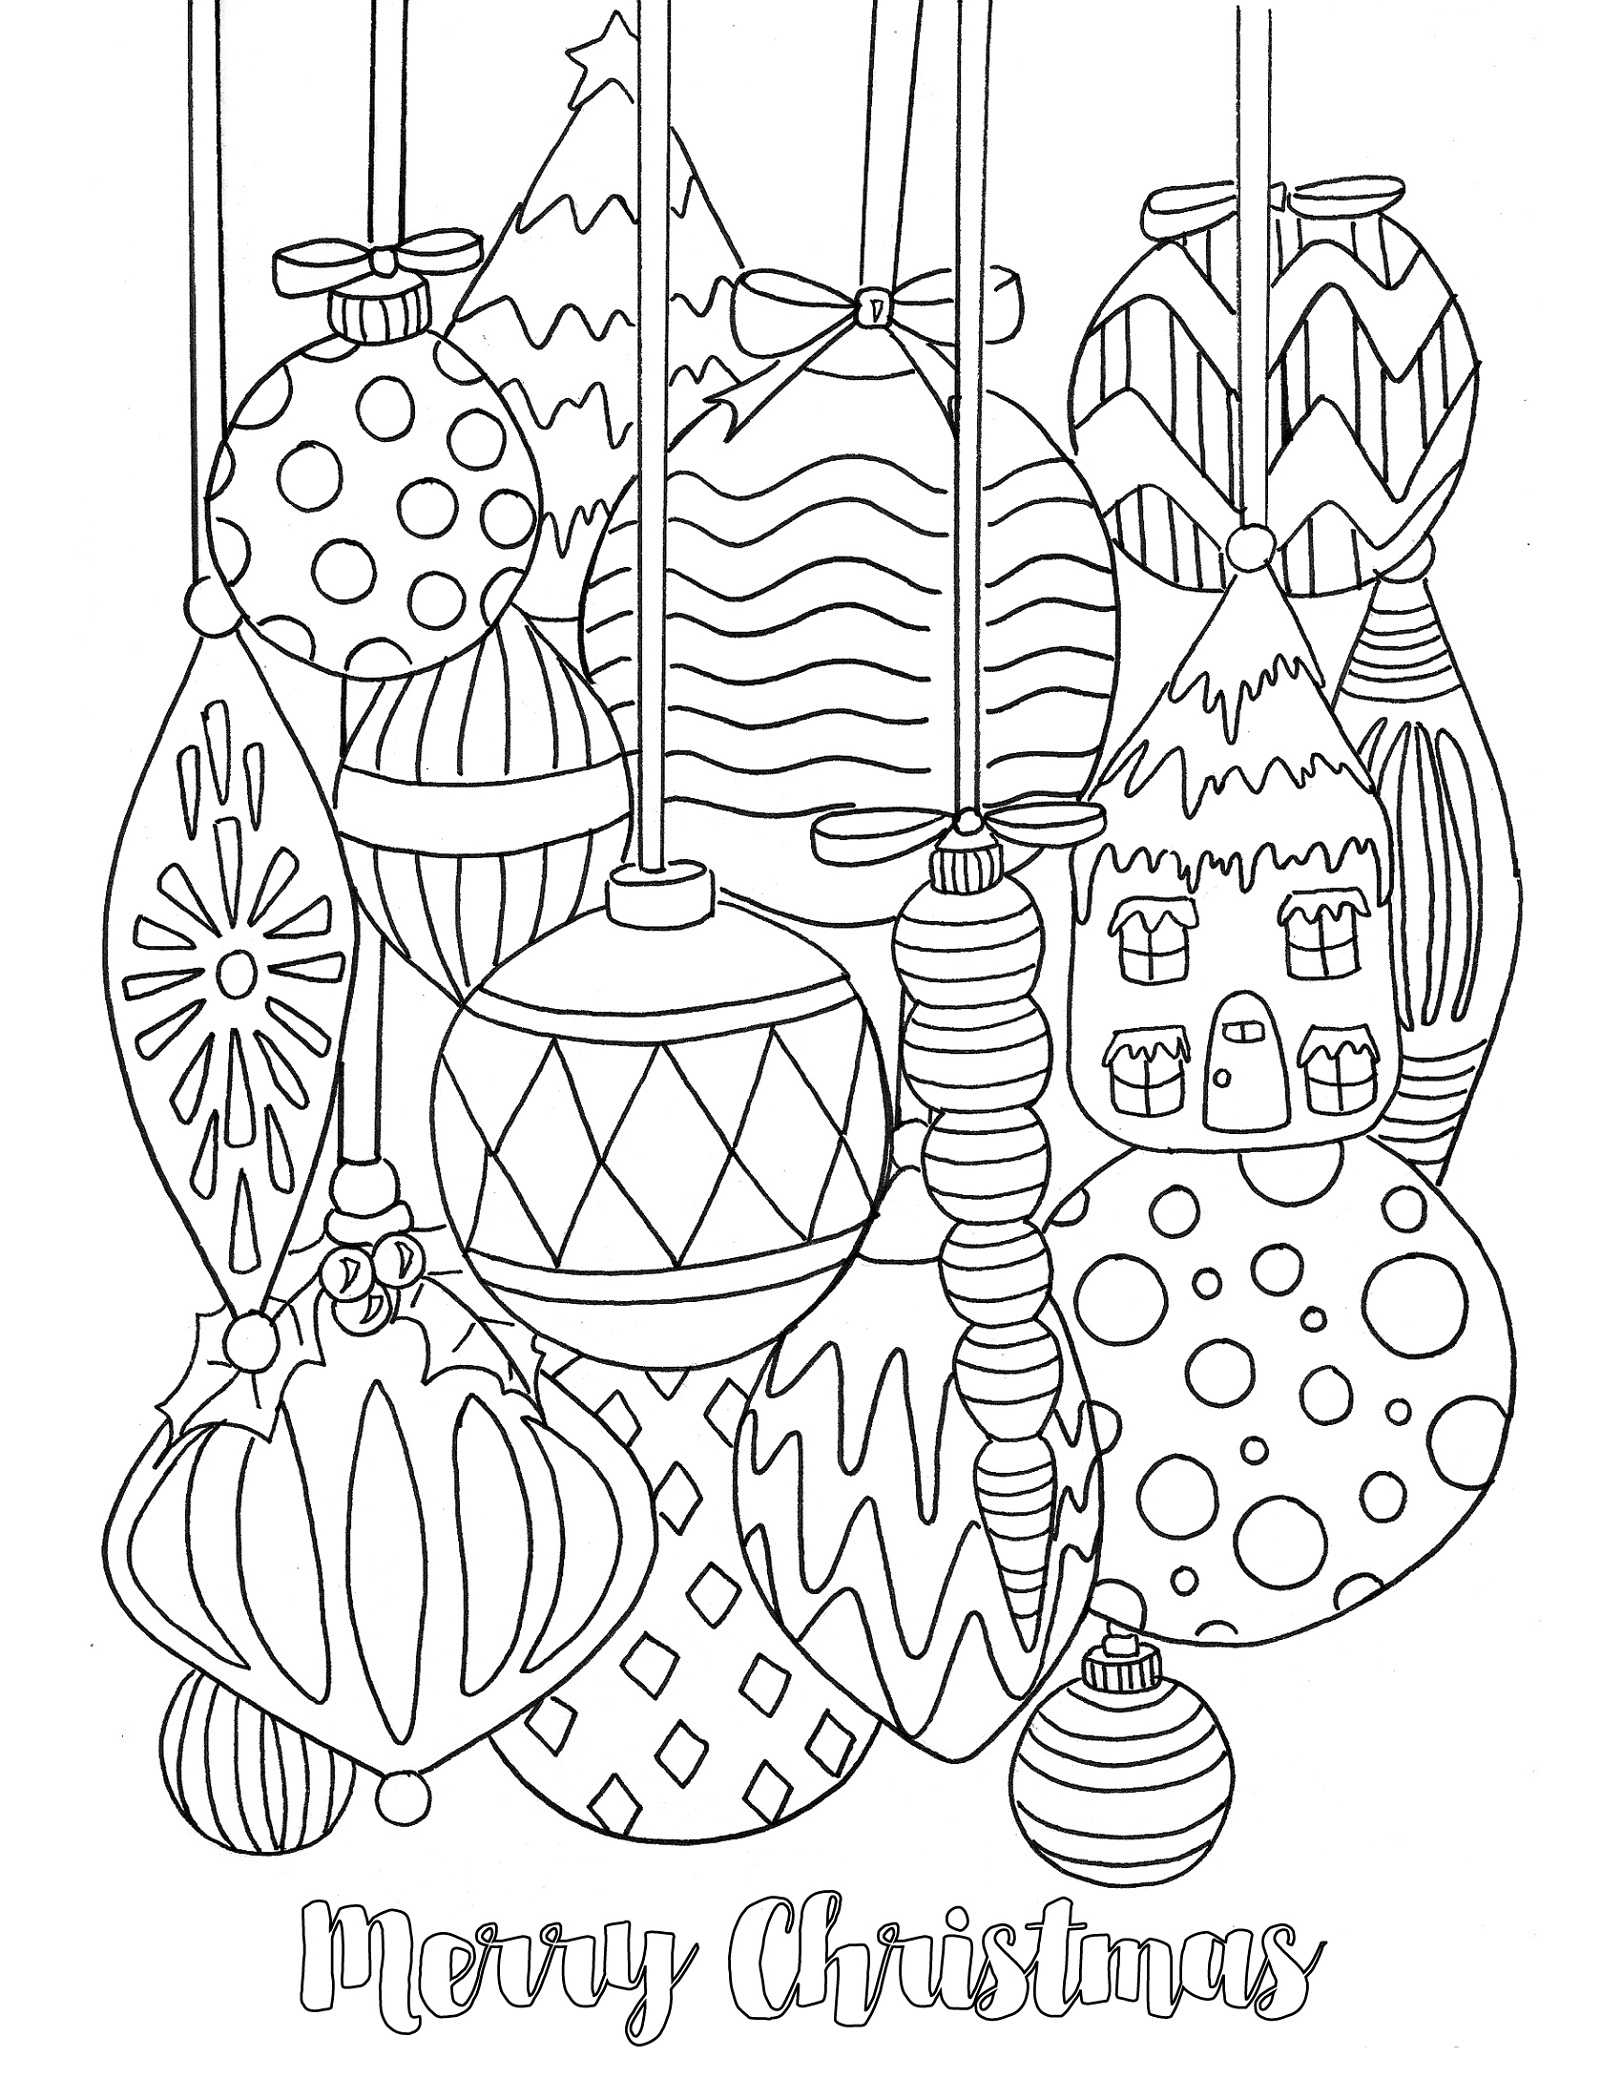 Christmas Ornament Coloring Pages Pictures